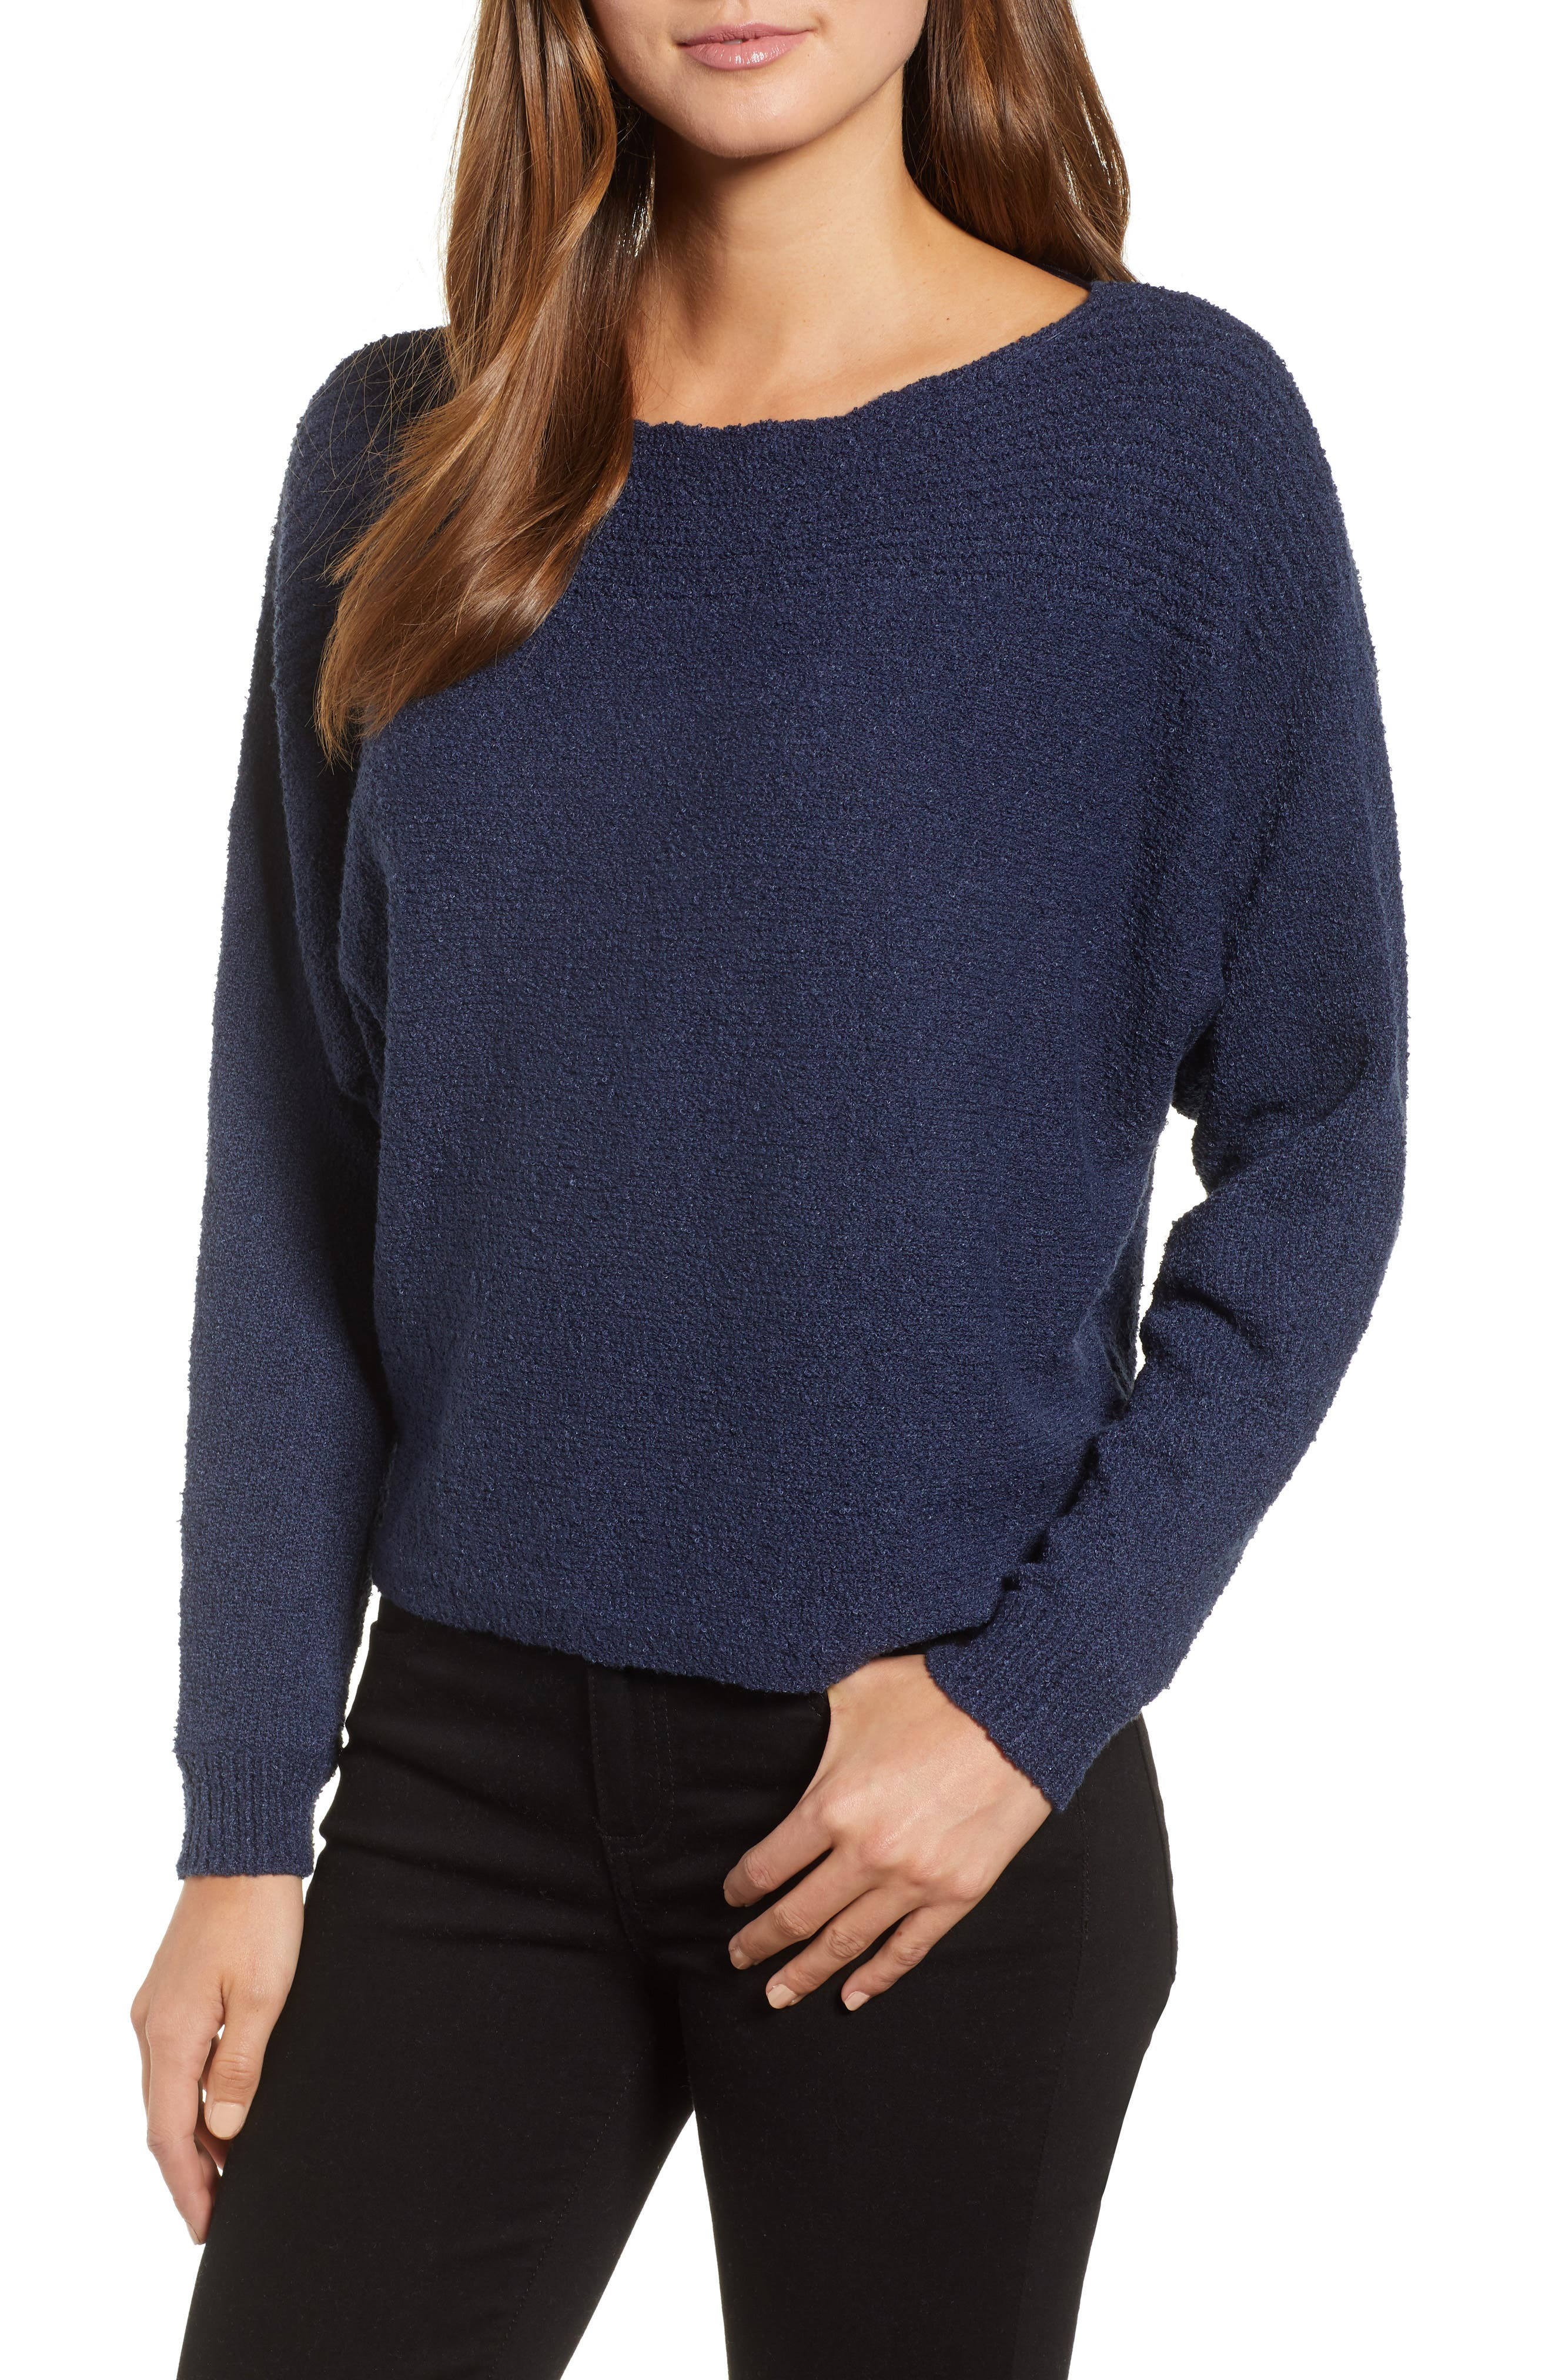 Calson<sup>®</sup> Dolman Sleeve Sweater,                             Main thumbnail 1, color,                             410